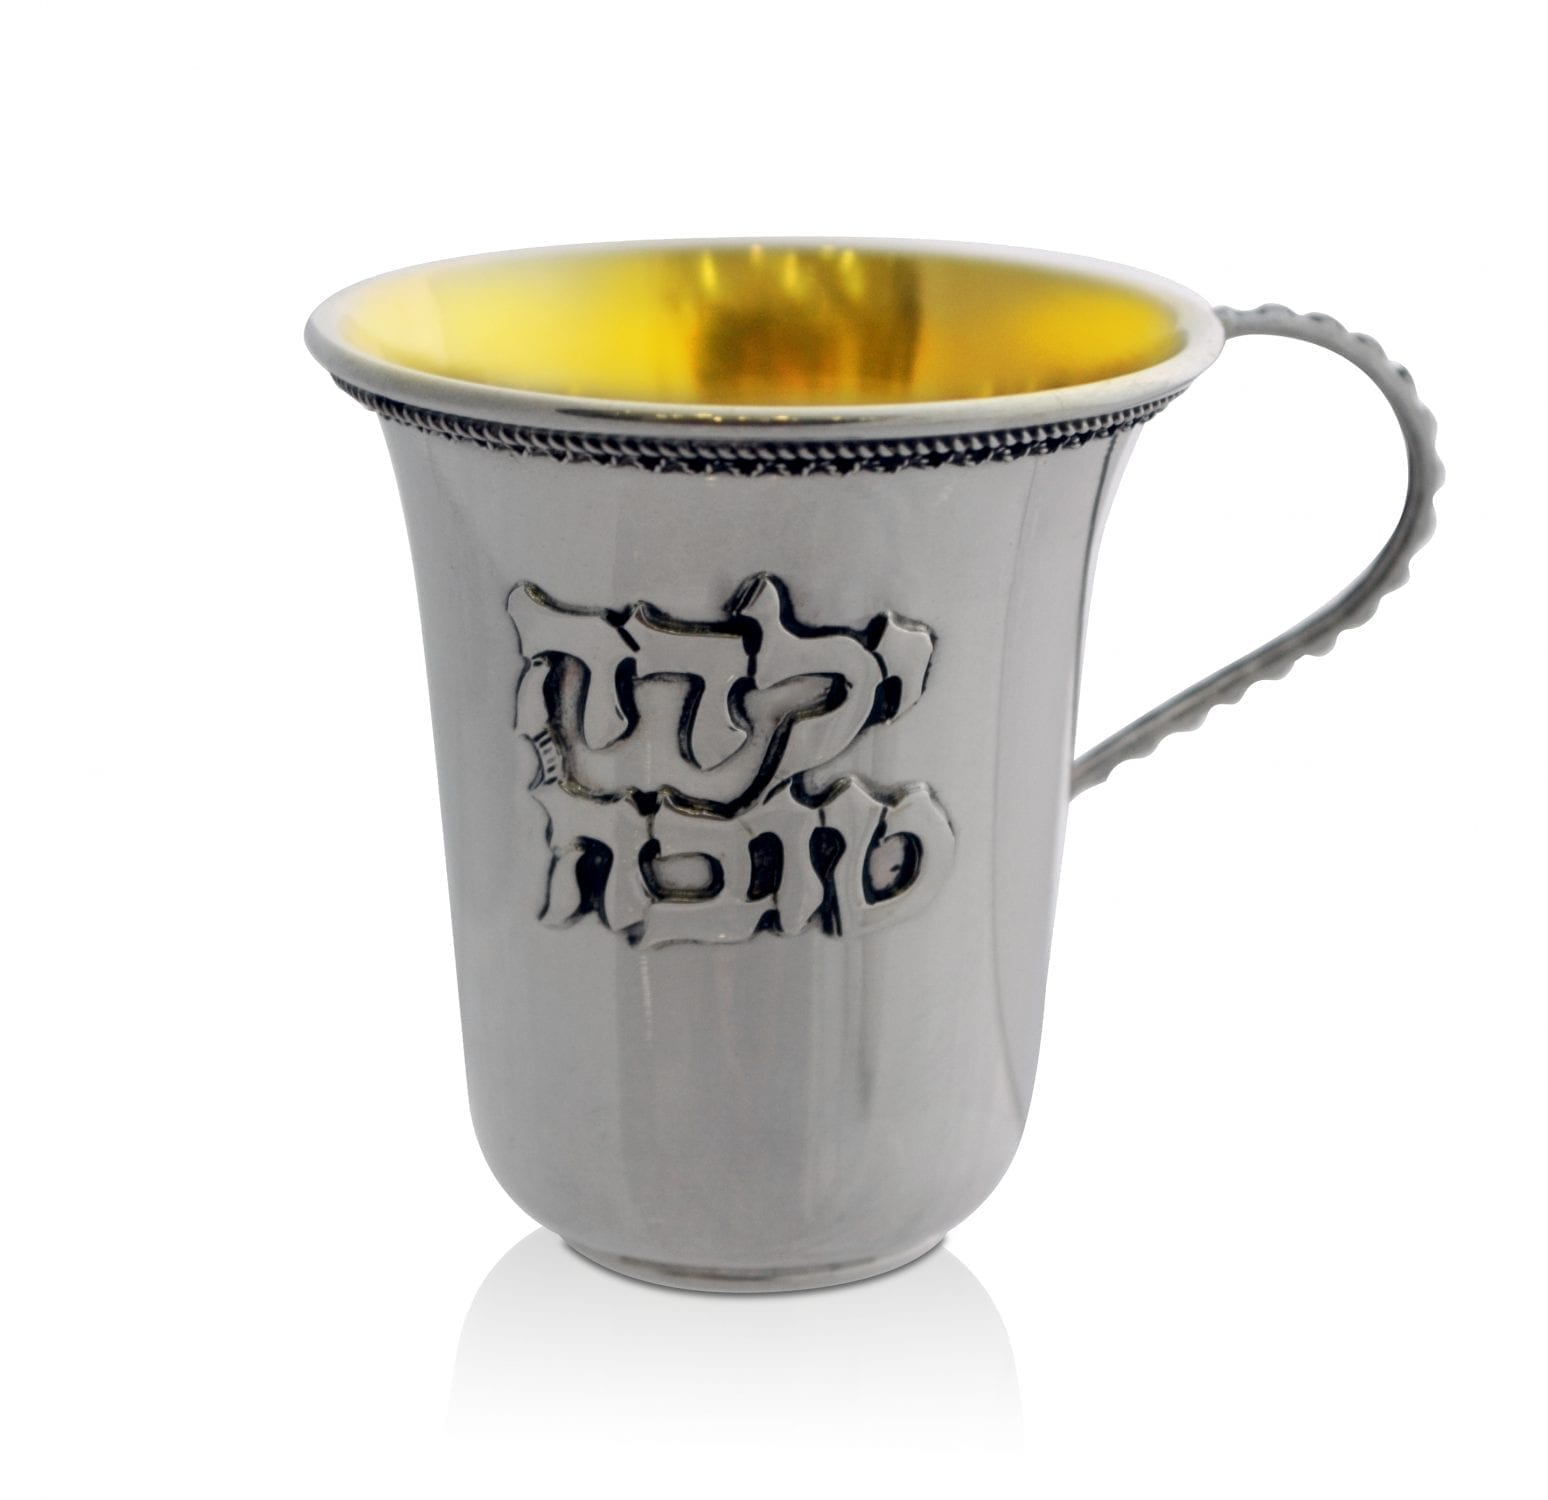 classic sterling silver yalda tova girl cup, judaica made in israel